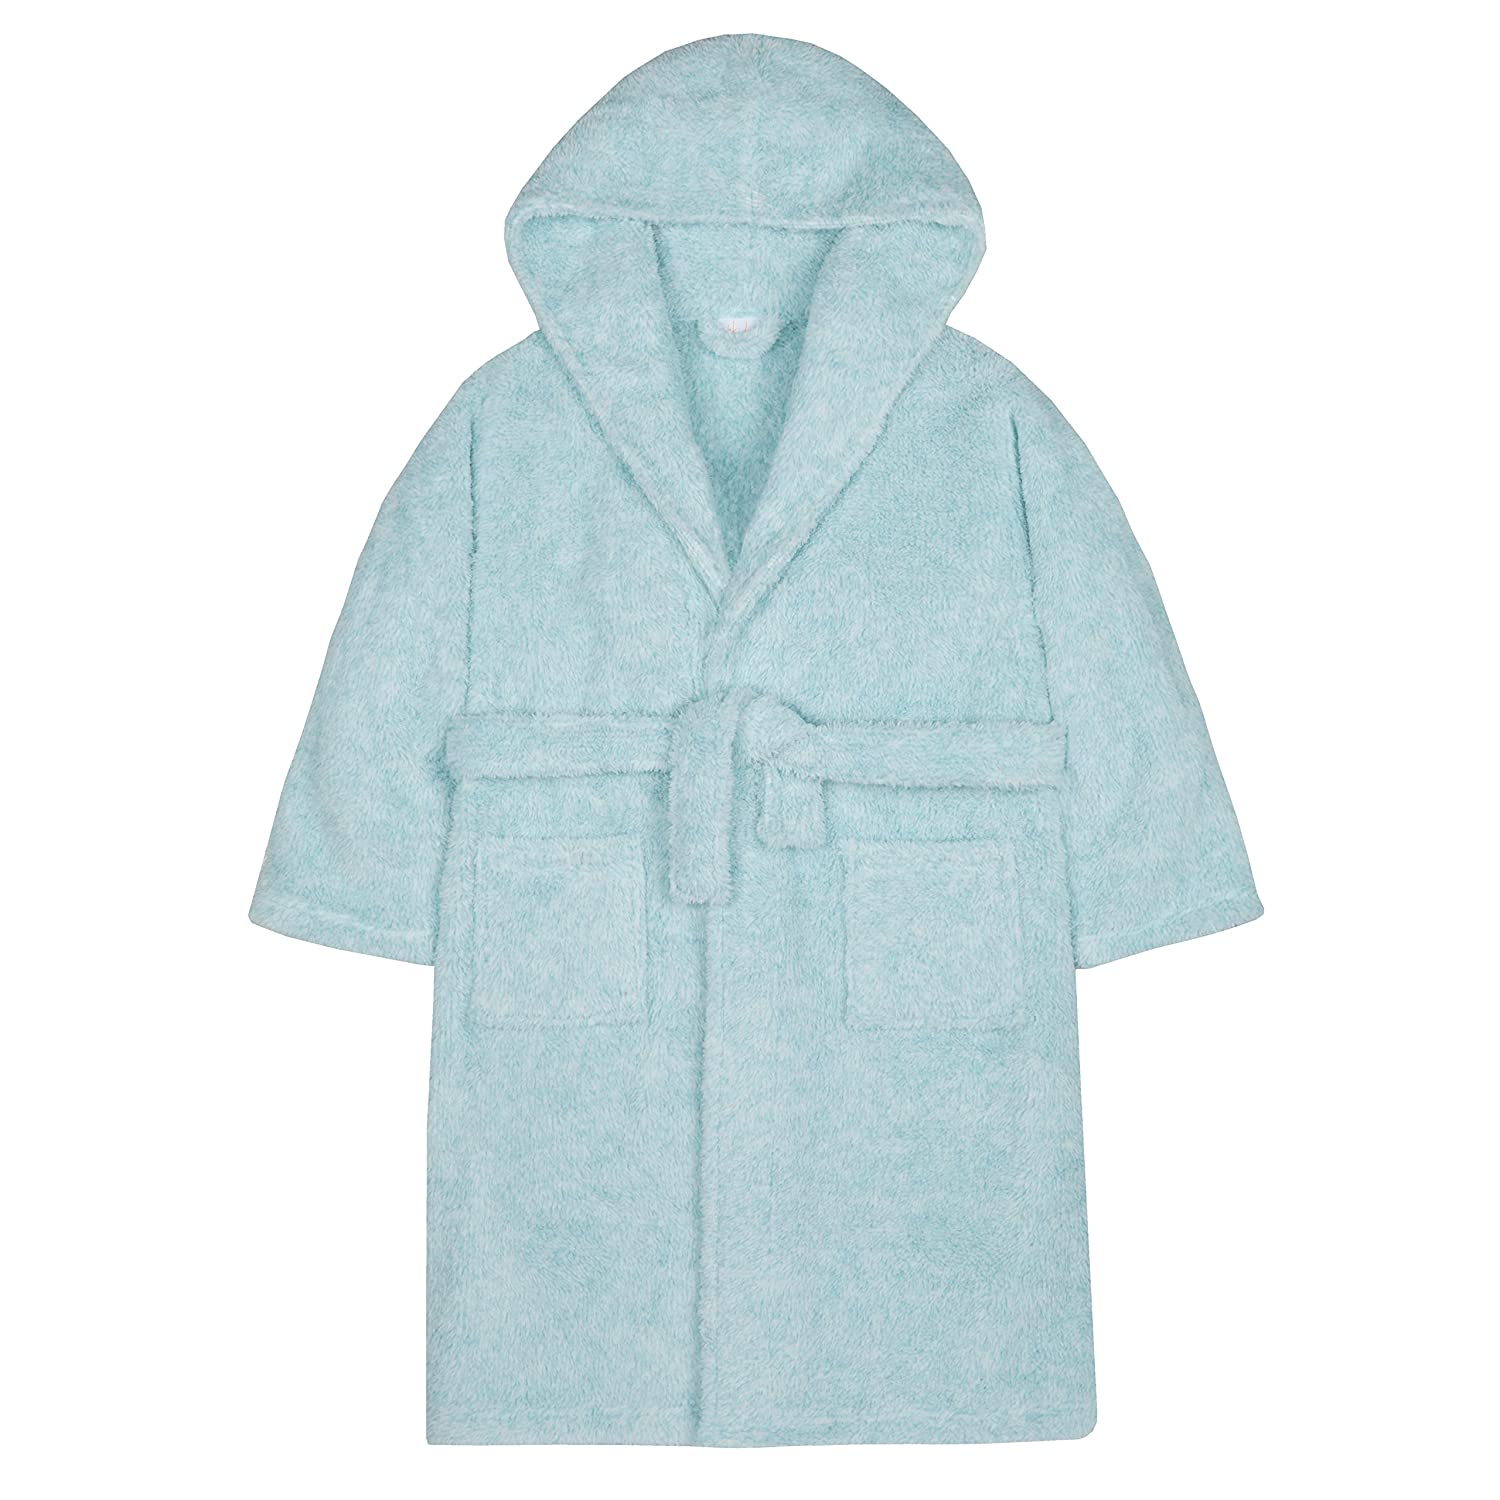 4Kidz Girls Snuggle Fleece Two Tone Dressing Gown with Hood